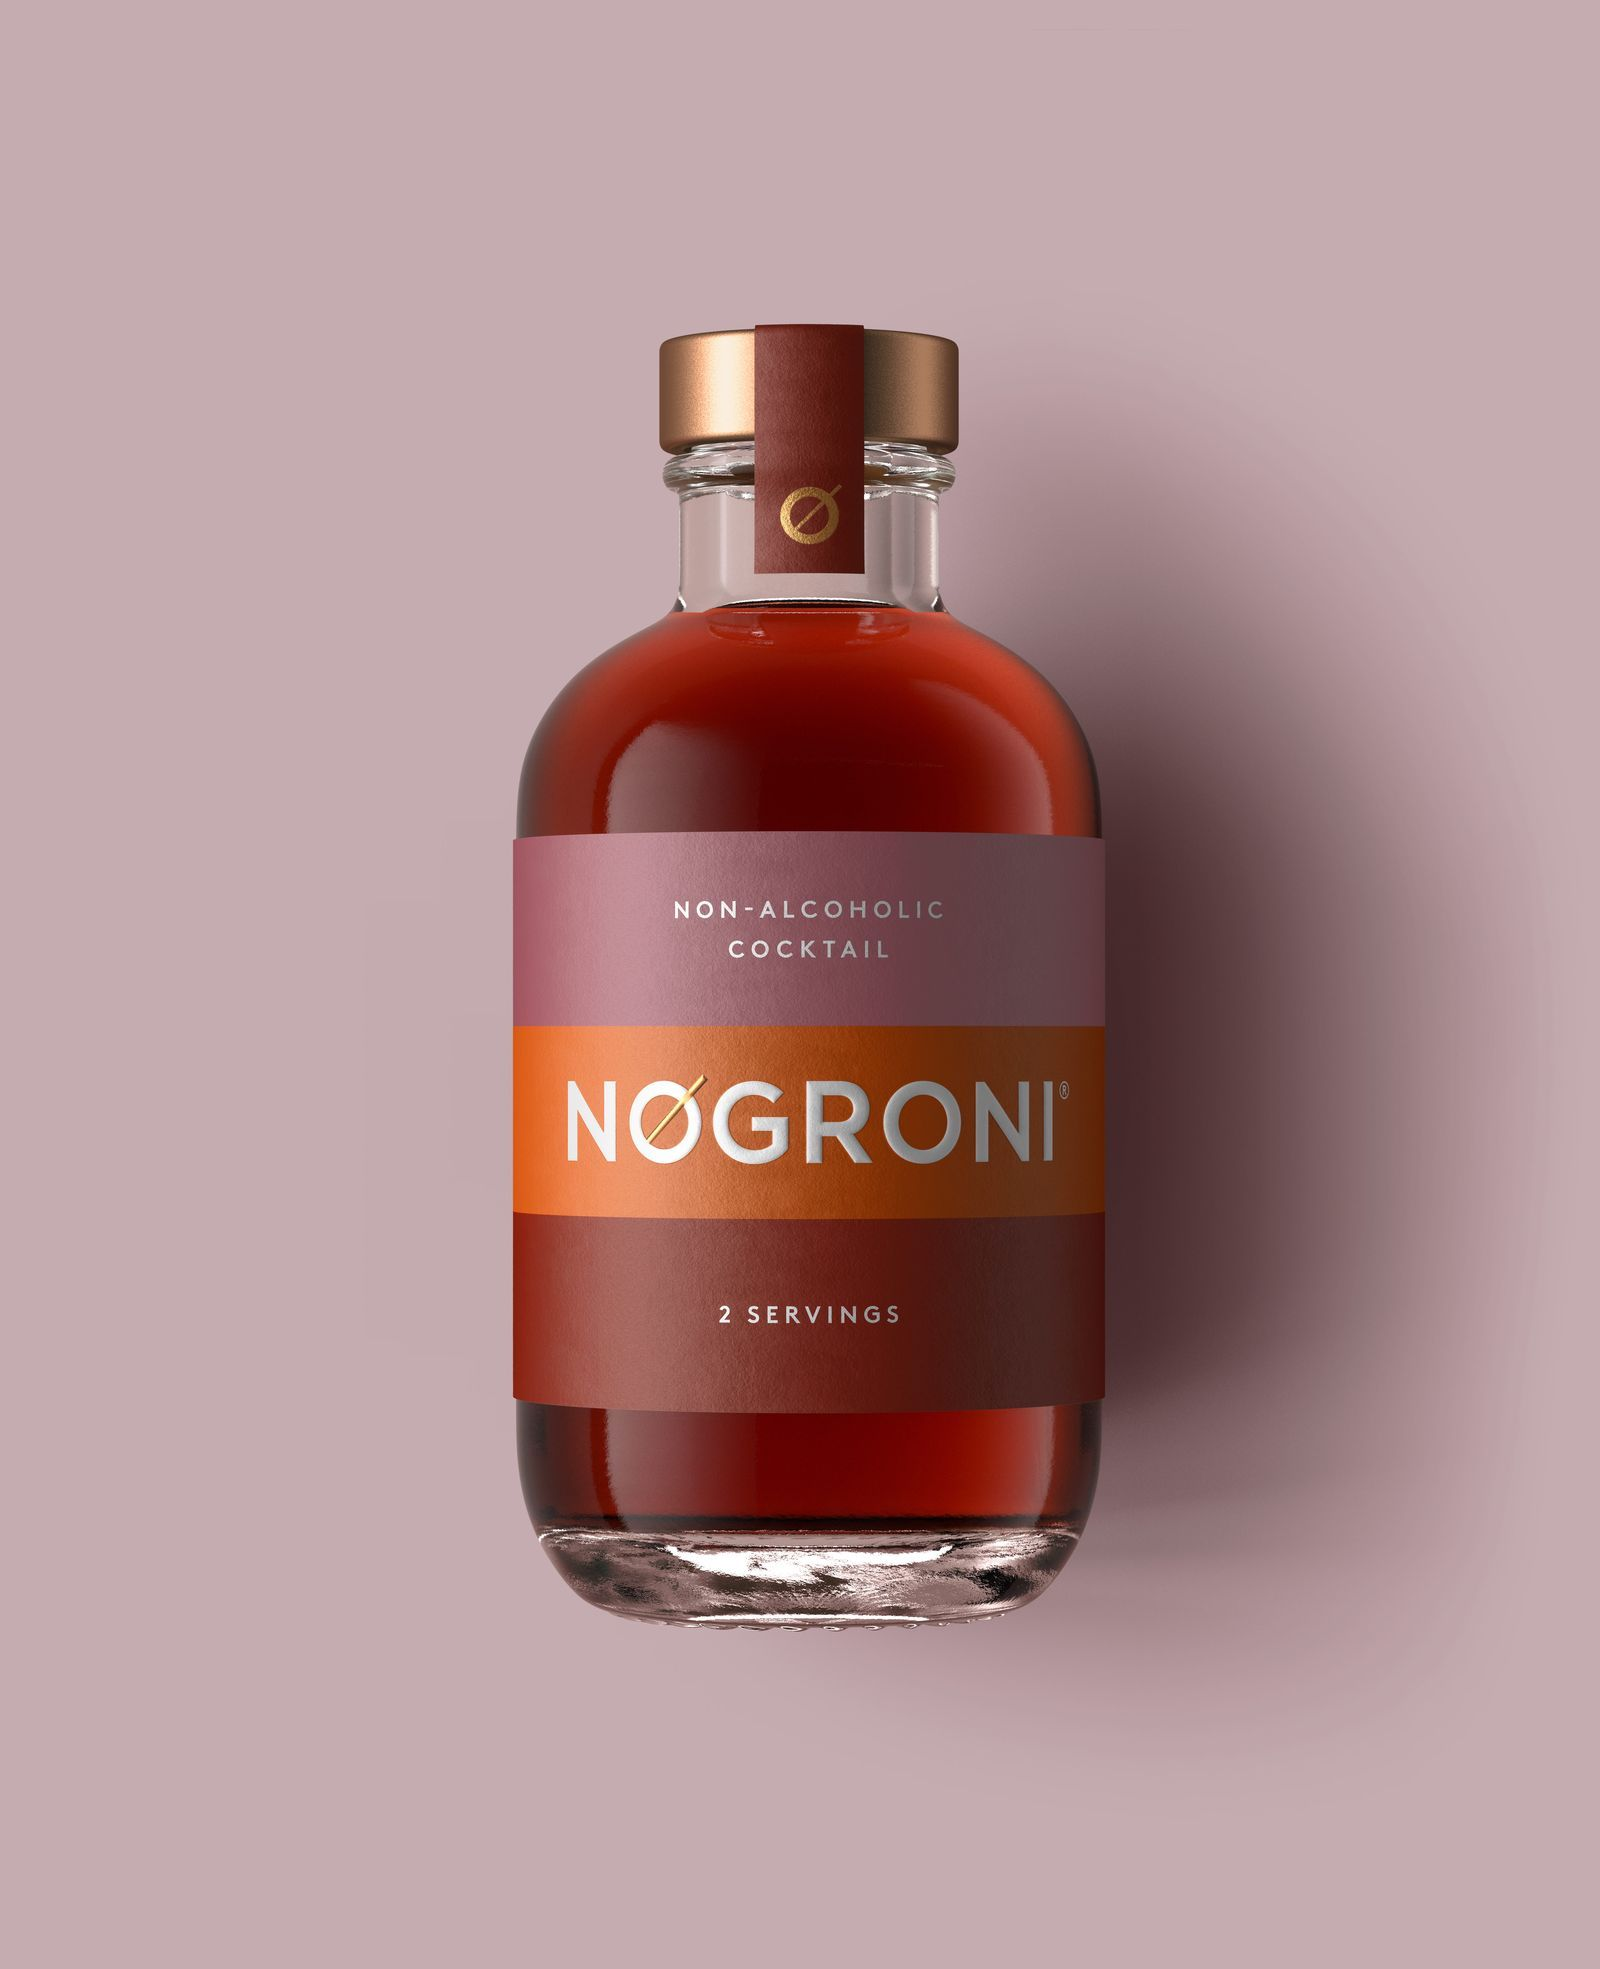 Love A Negroni Try Nogroni In 2020 Bottle Label Design Bottle Design Packaging Alcohol Packaging